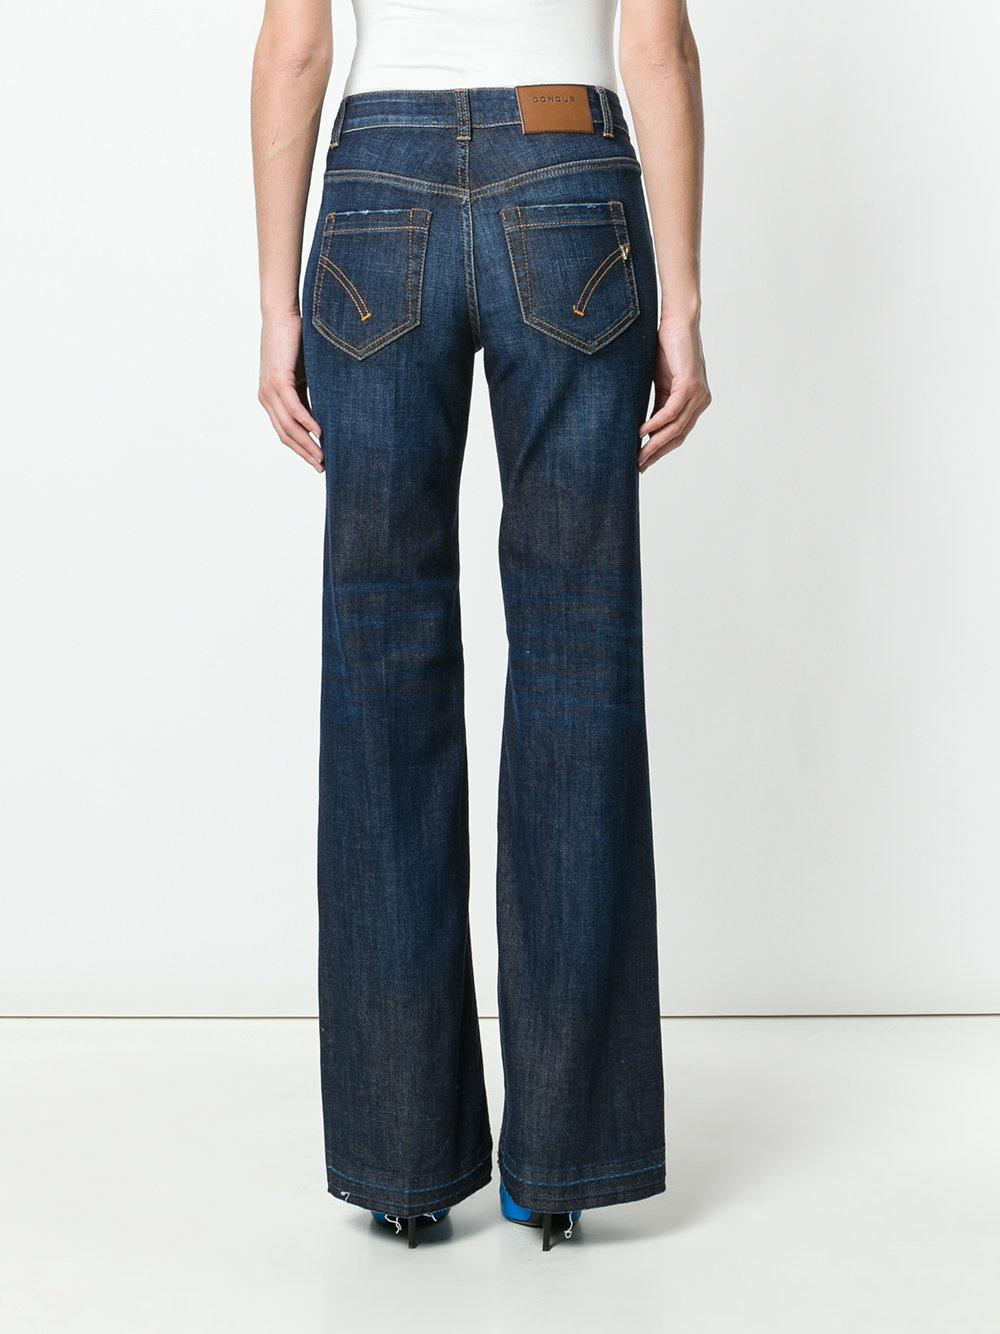 Dondup Denim Faded Distressed Detail Flared Jeans in Blue